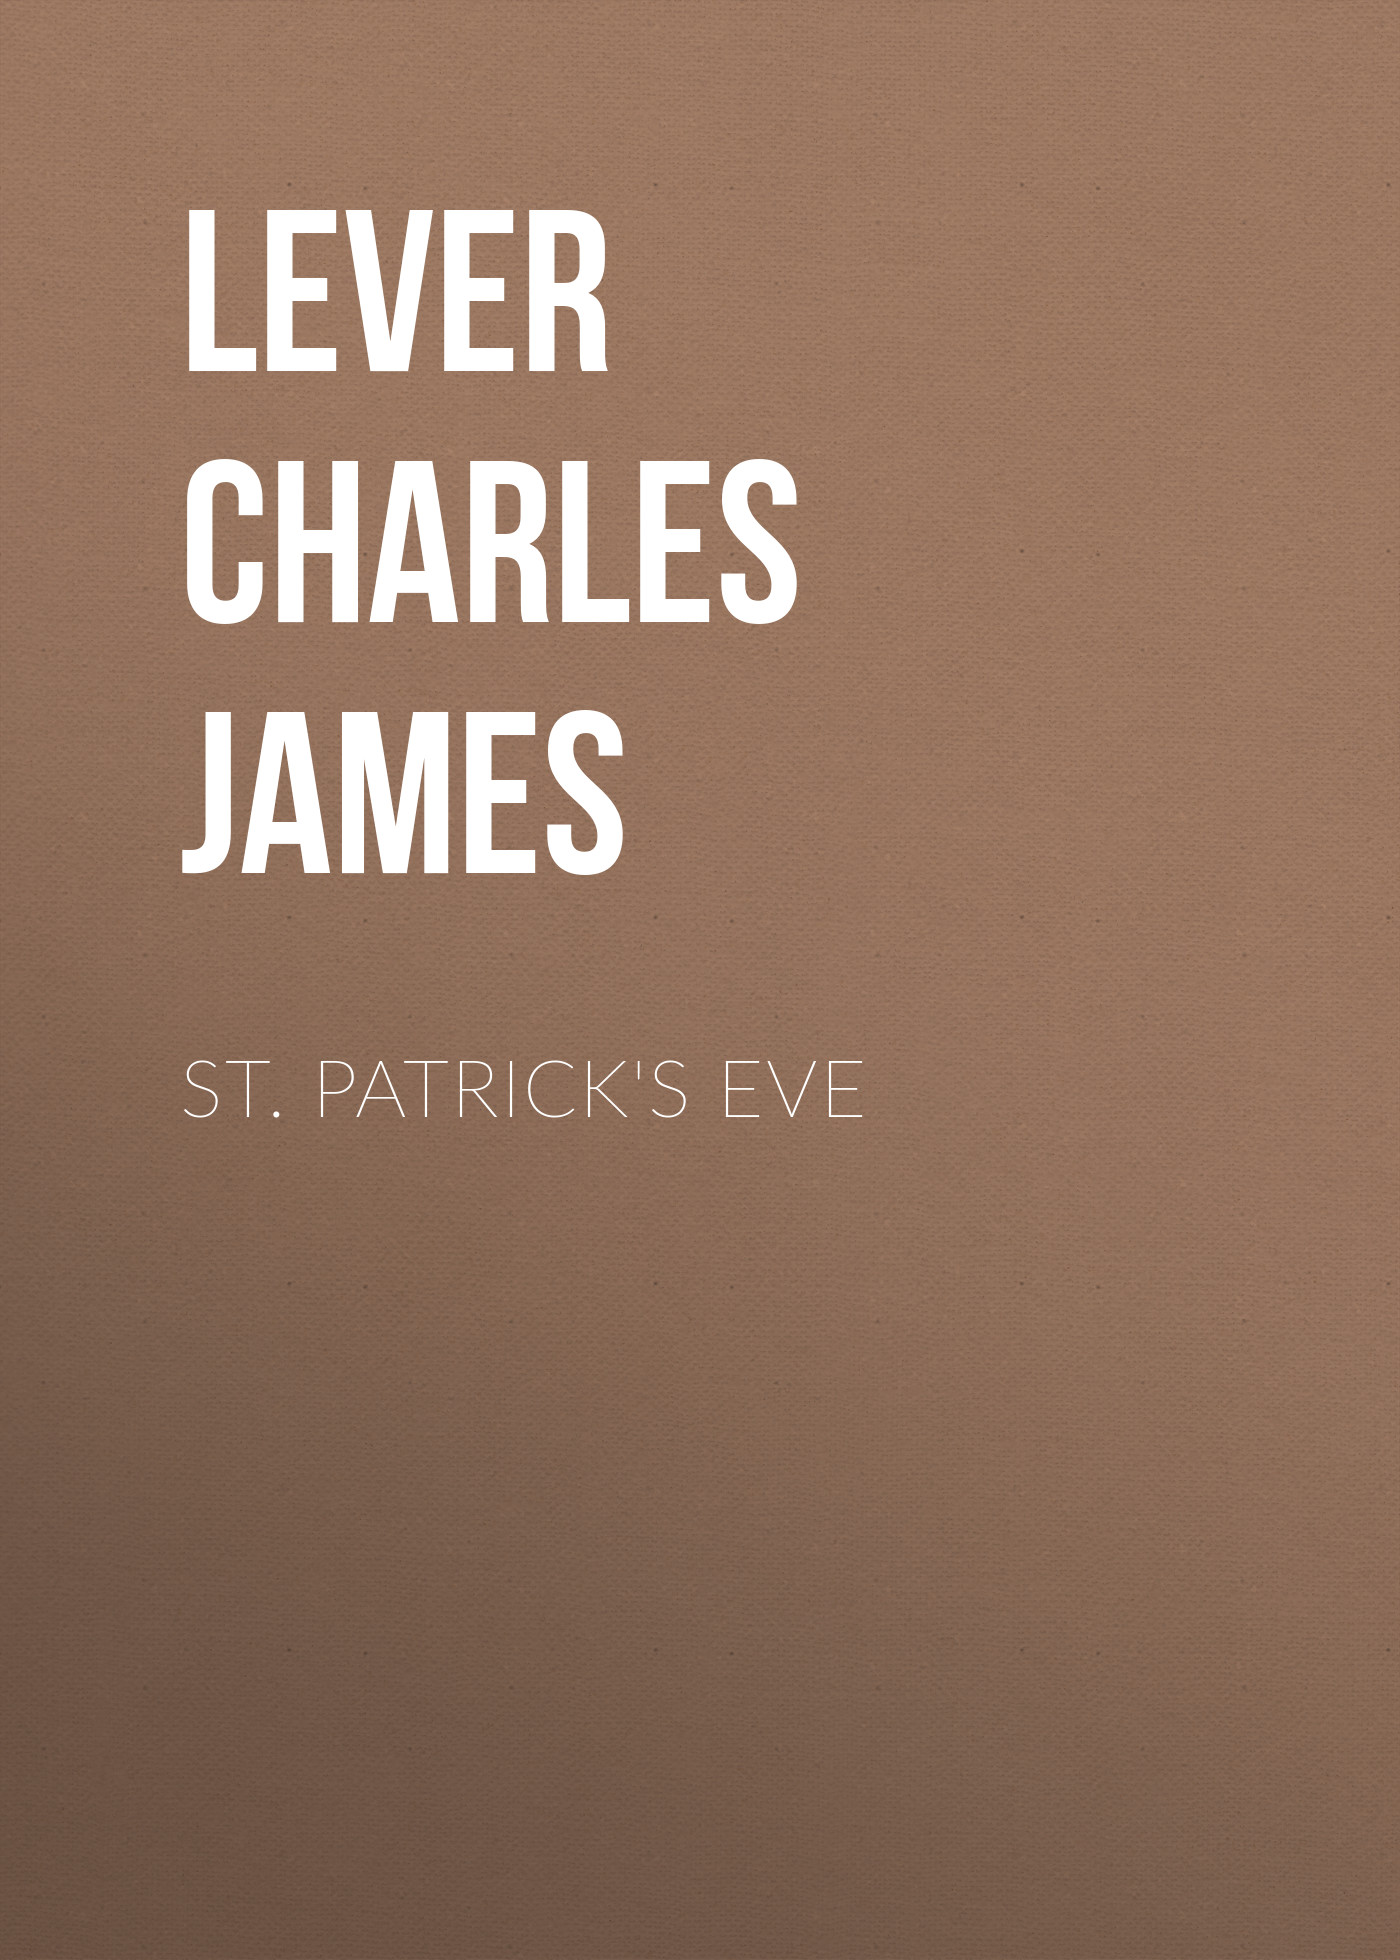 Lever Charles James St. Patrick's Eve